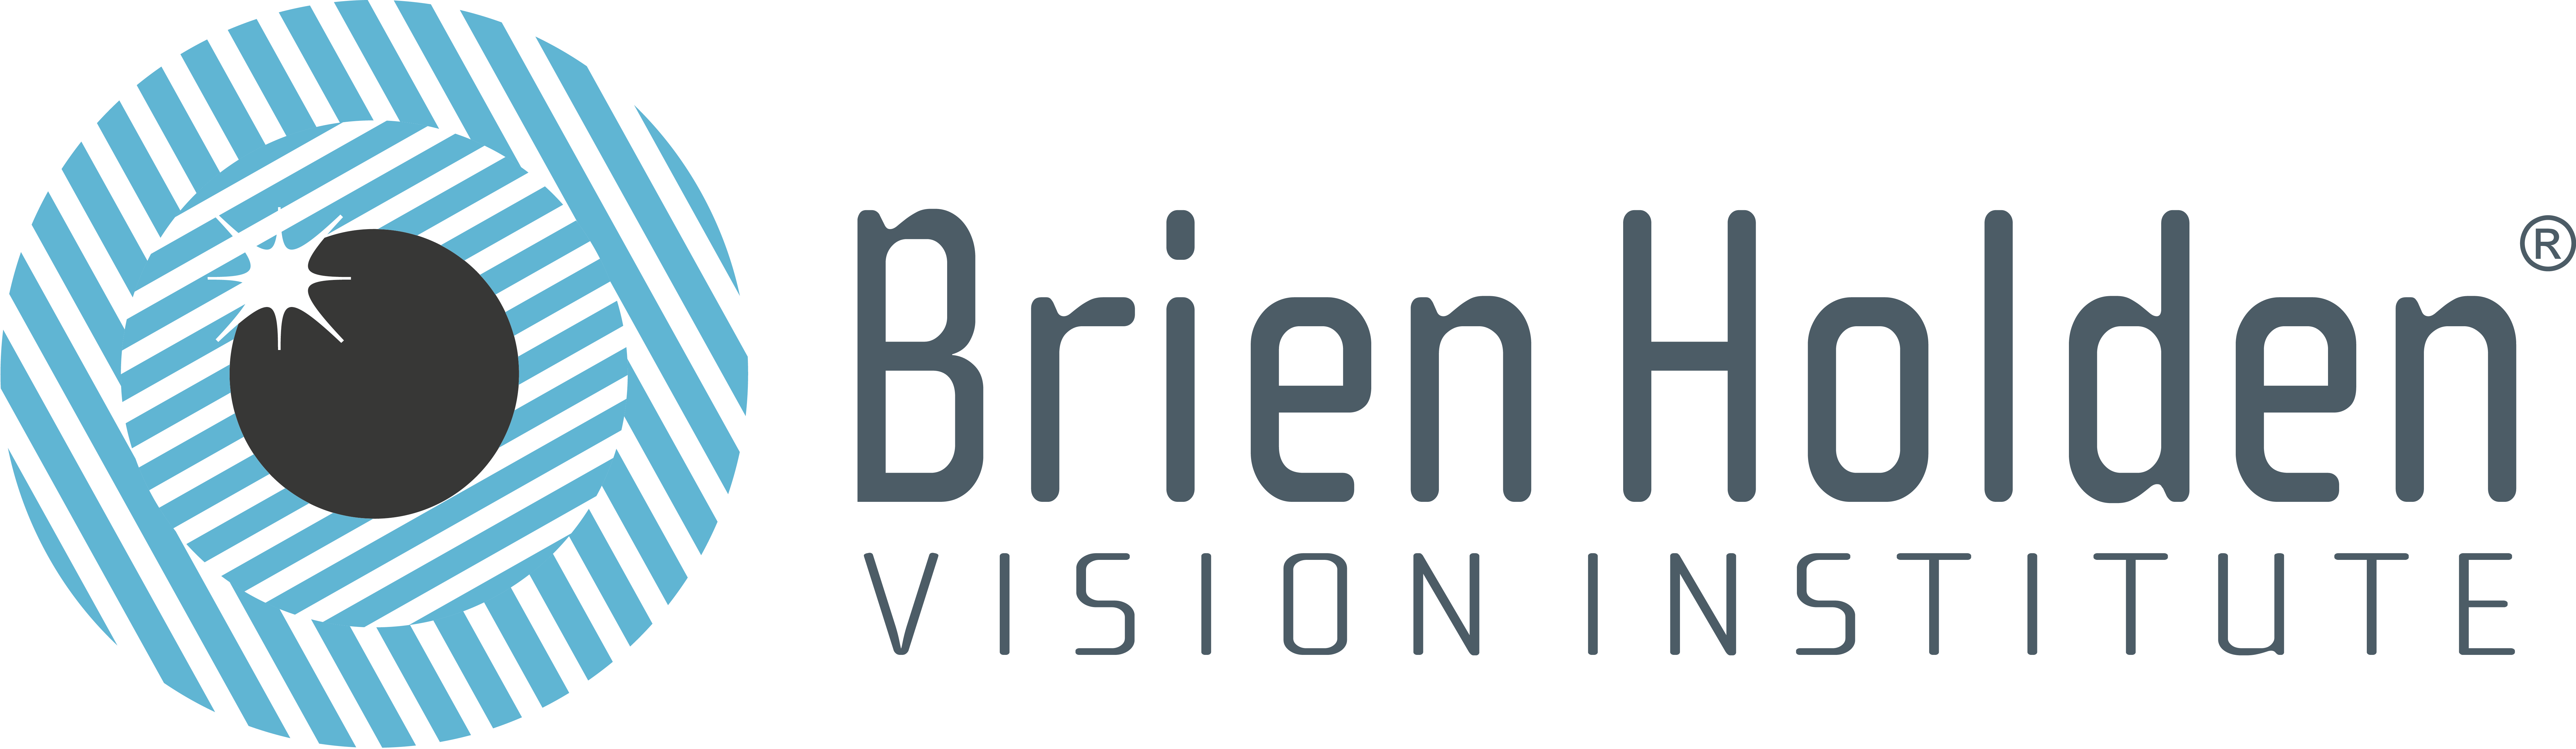 Brien Holden Institute